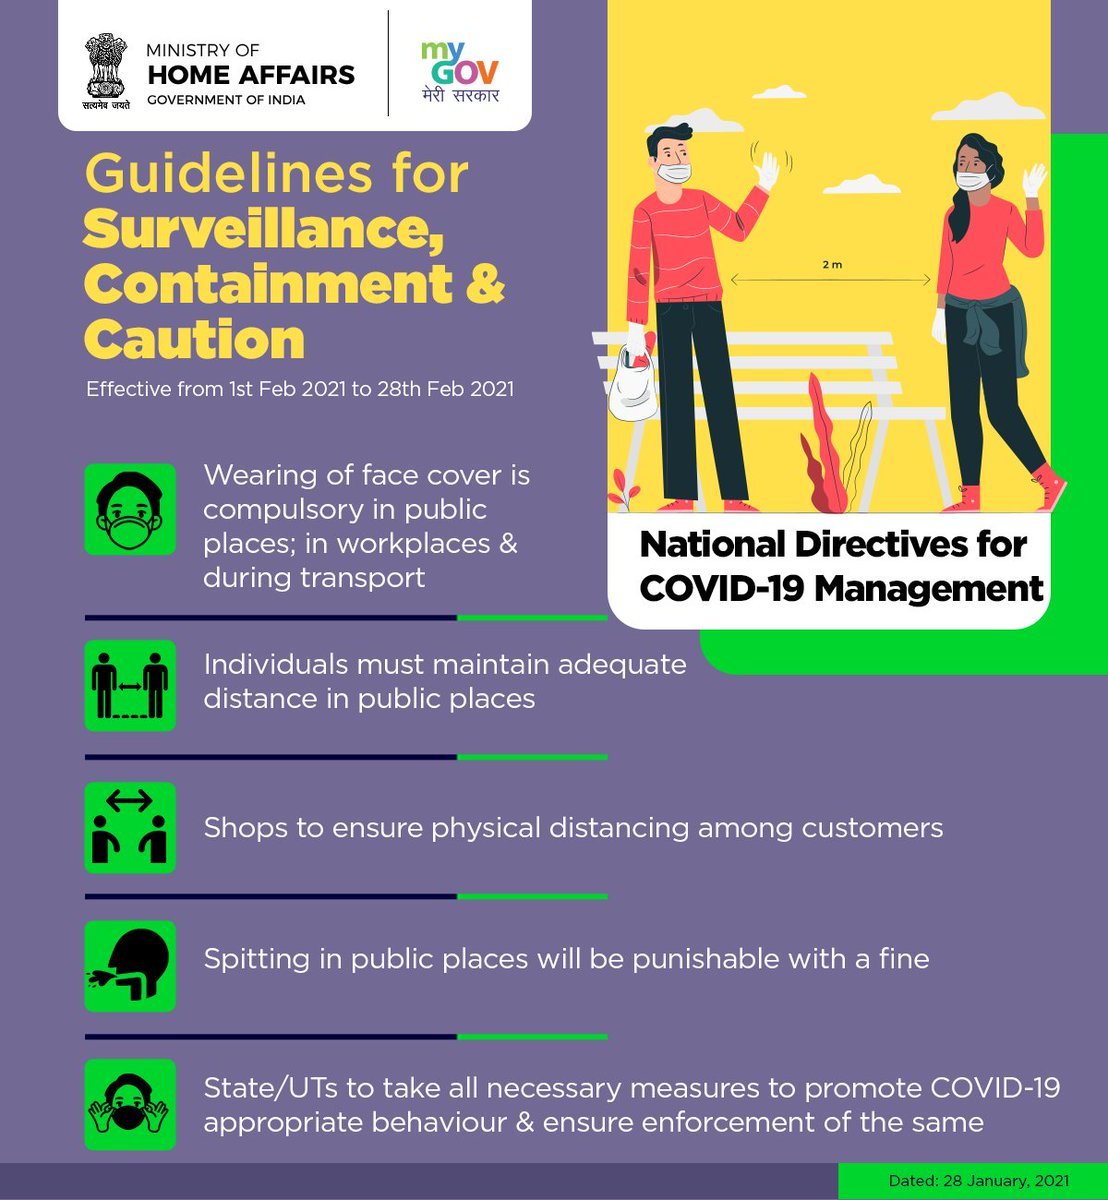 Ministry of Home Affairs has issued a fresh set of COVID-19 guidelines for surveillance, containment & caution that will be effective from 1st Feb 2021 till 28th Feb 2021. Take a look at the National Directives for COVID-19 Management. #IndiaFightsCorona